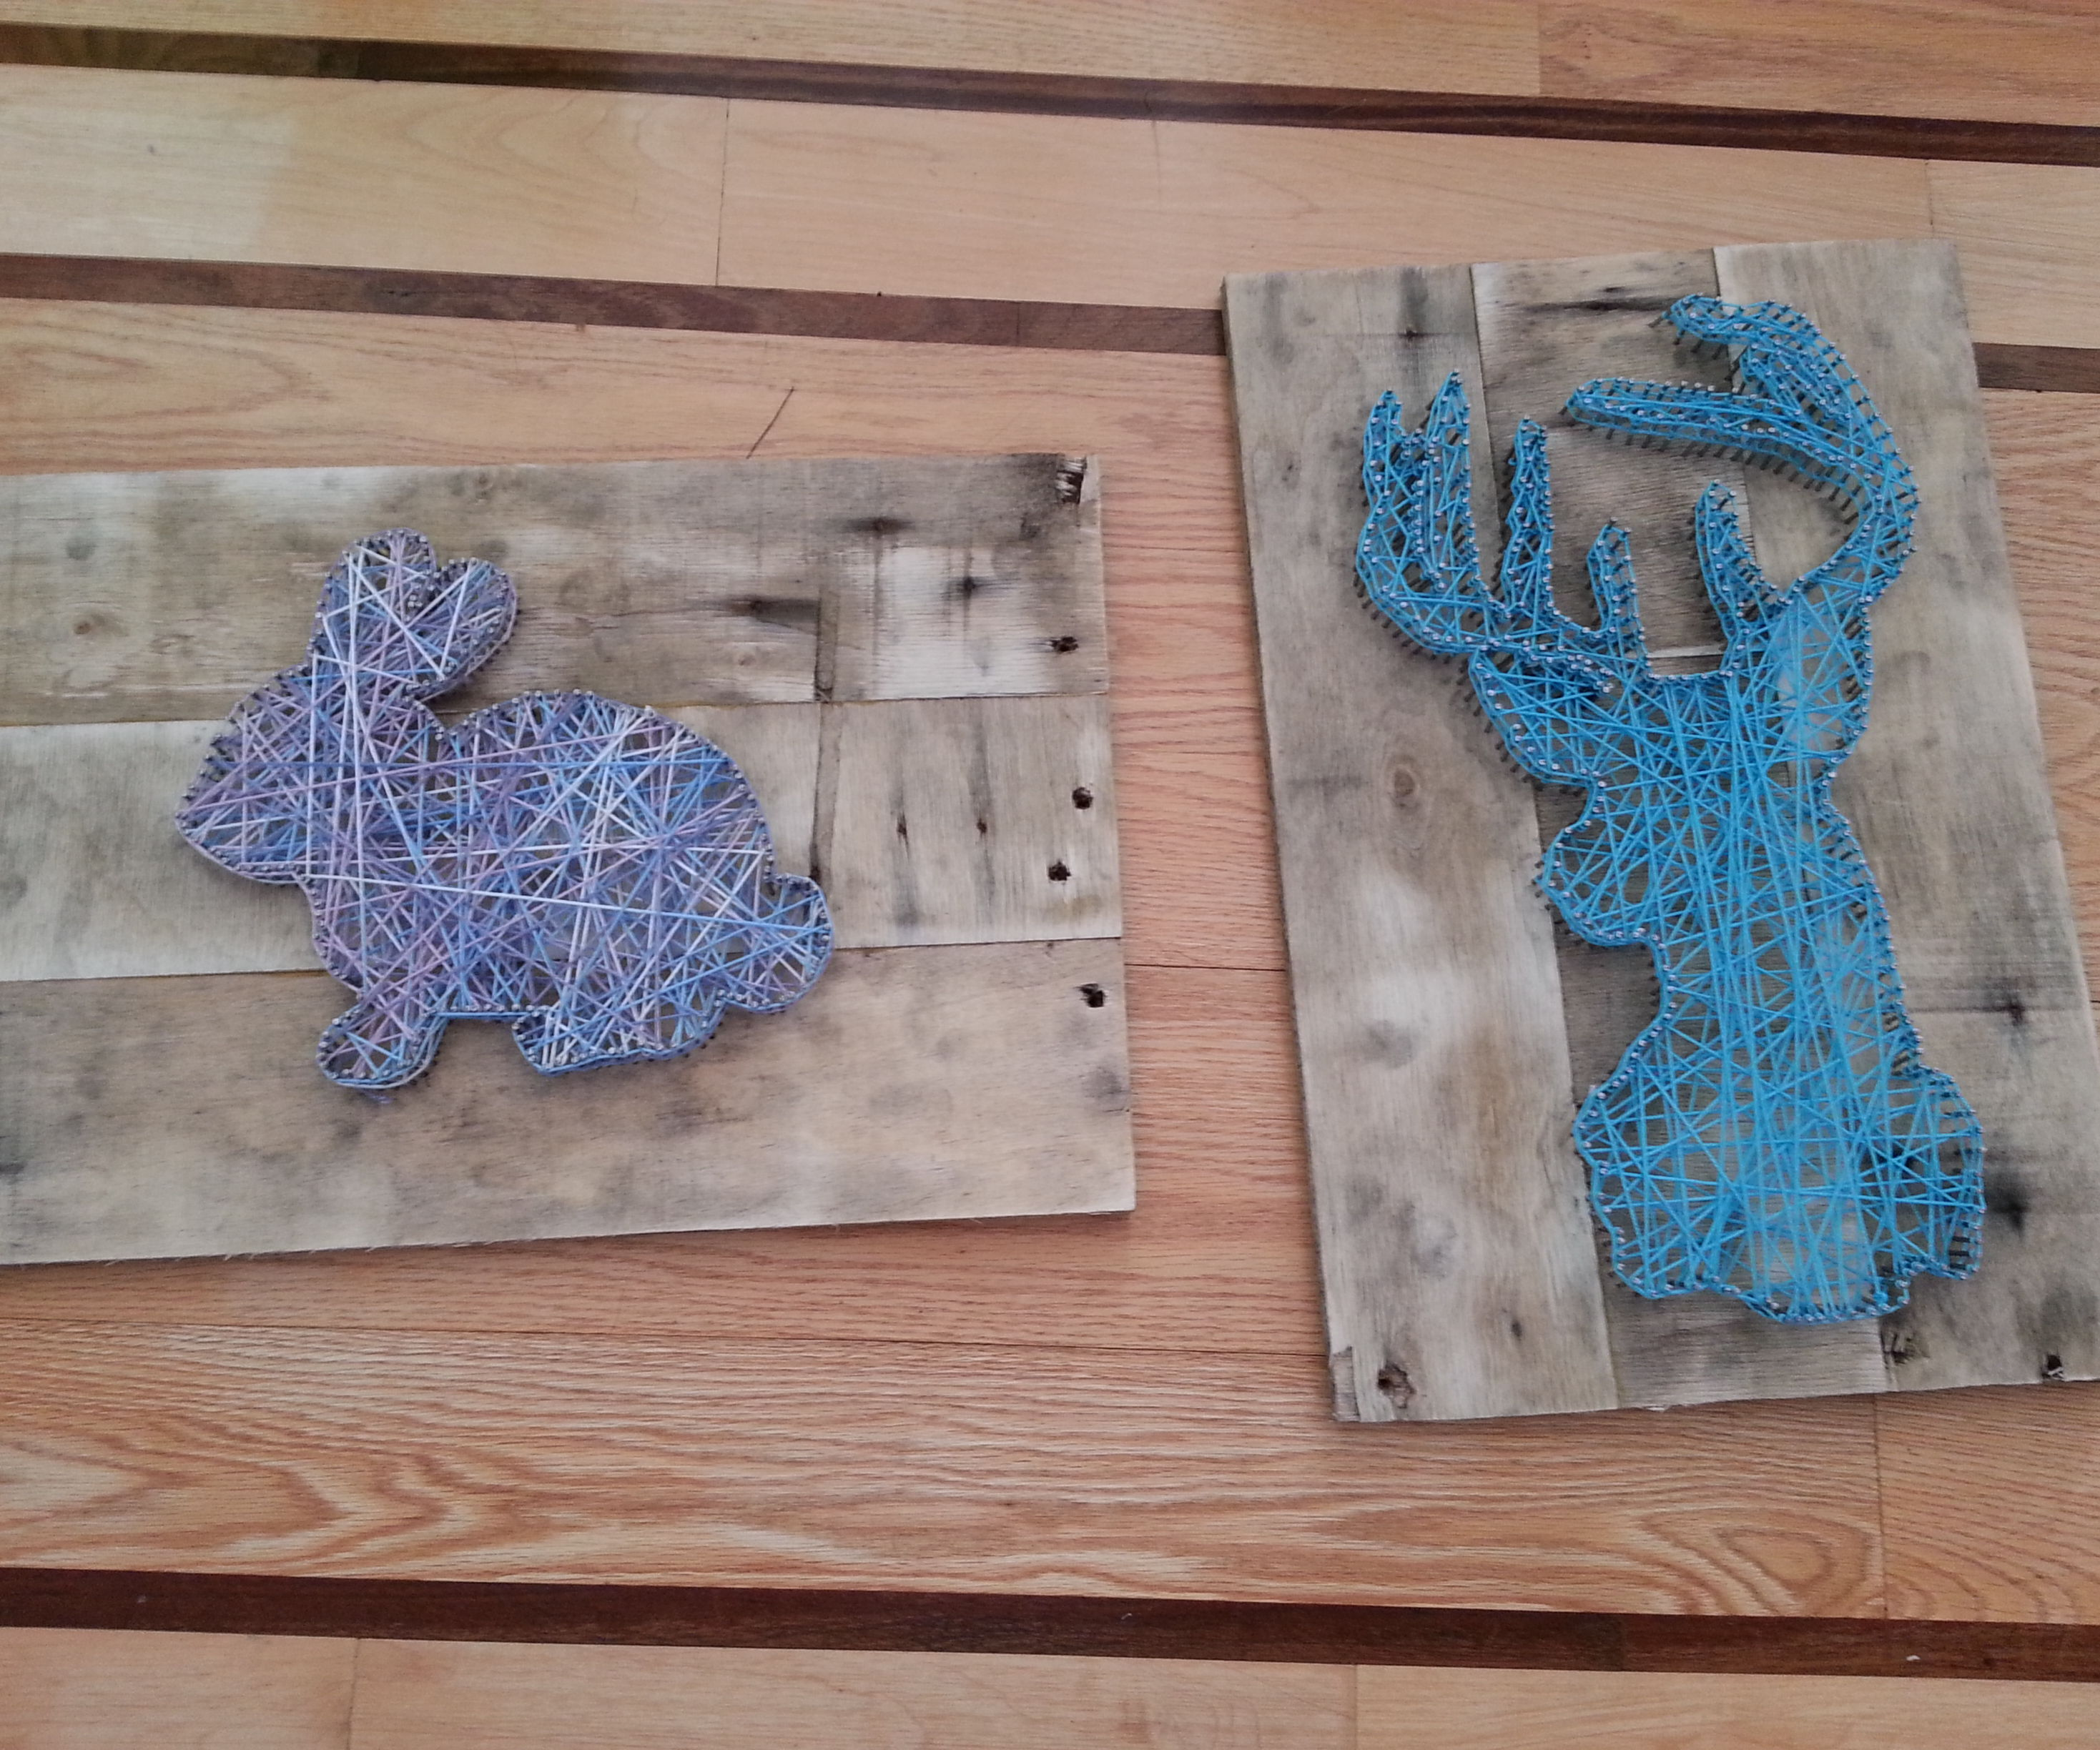 Nail String Art using reclaimed wood